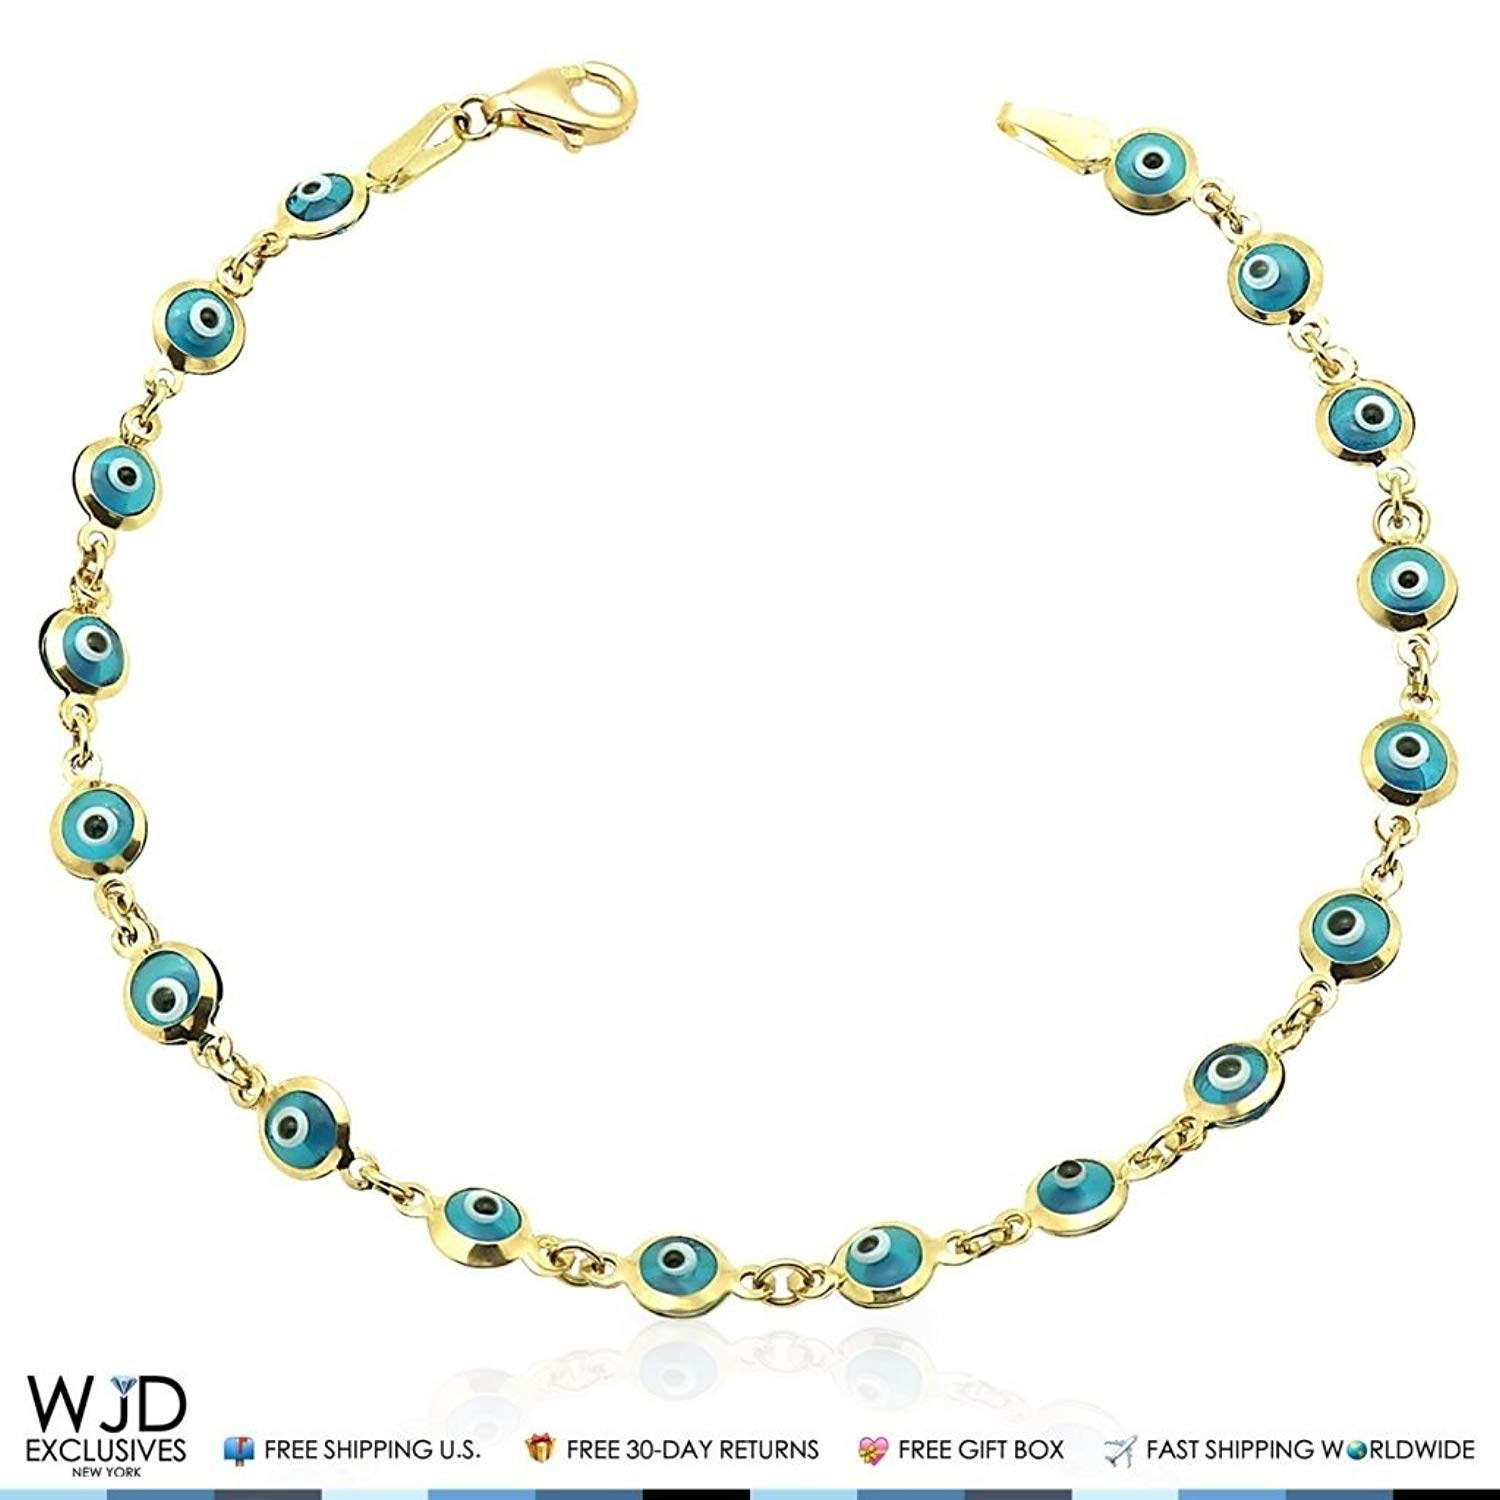 14k Yellow Gold Good Luck Evil Eye Cable Charm Bracelet 7.25""